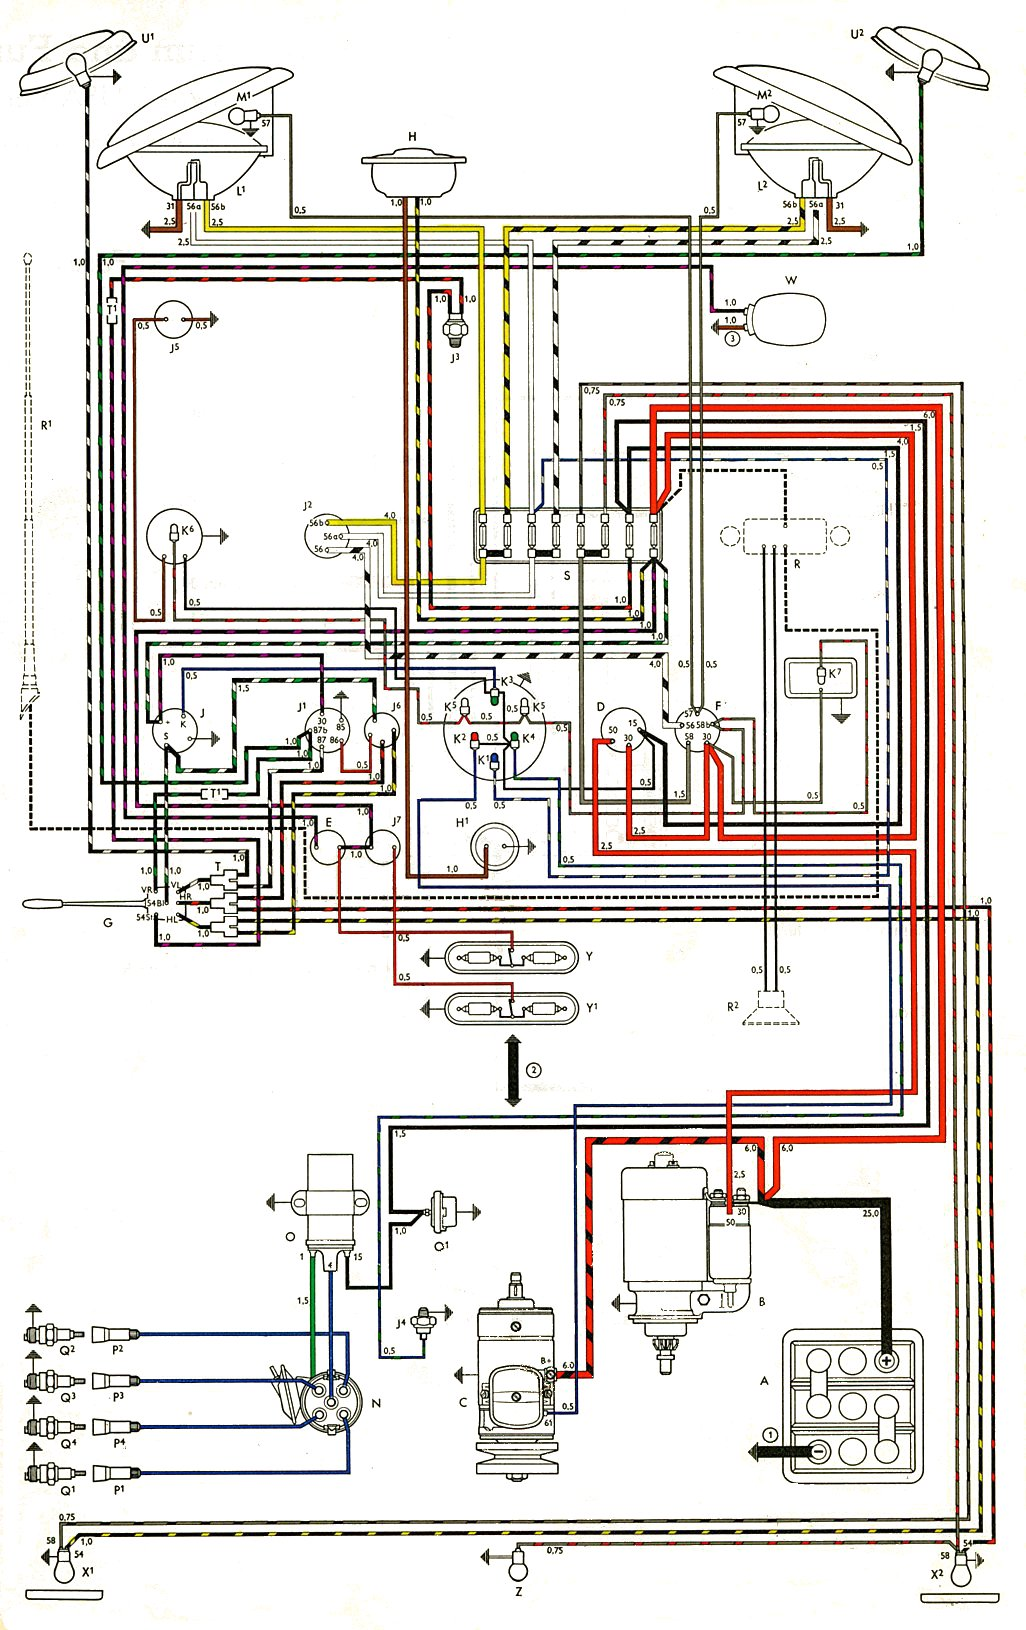 bus_63_USA thesamba com type 2 wiring diagrams 1965 vw beetle wiring diagram at nearapp.co